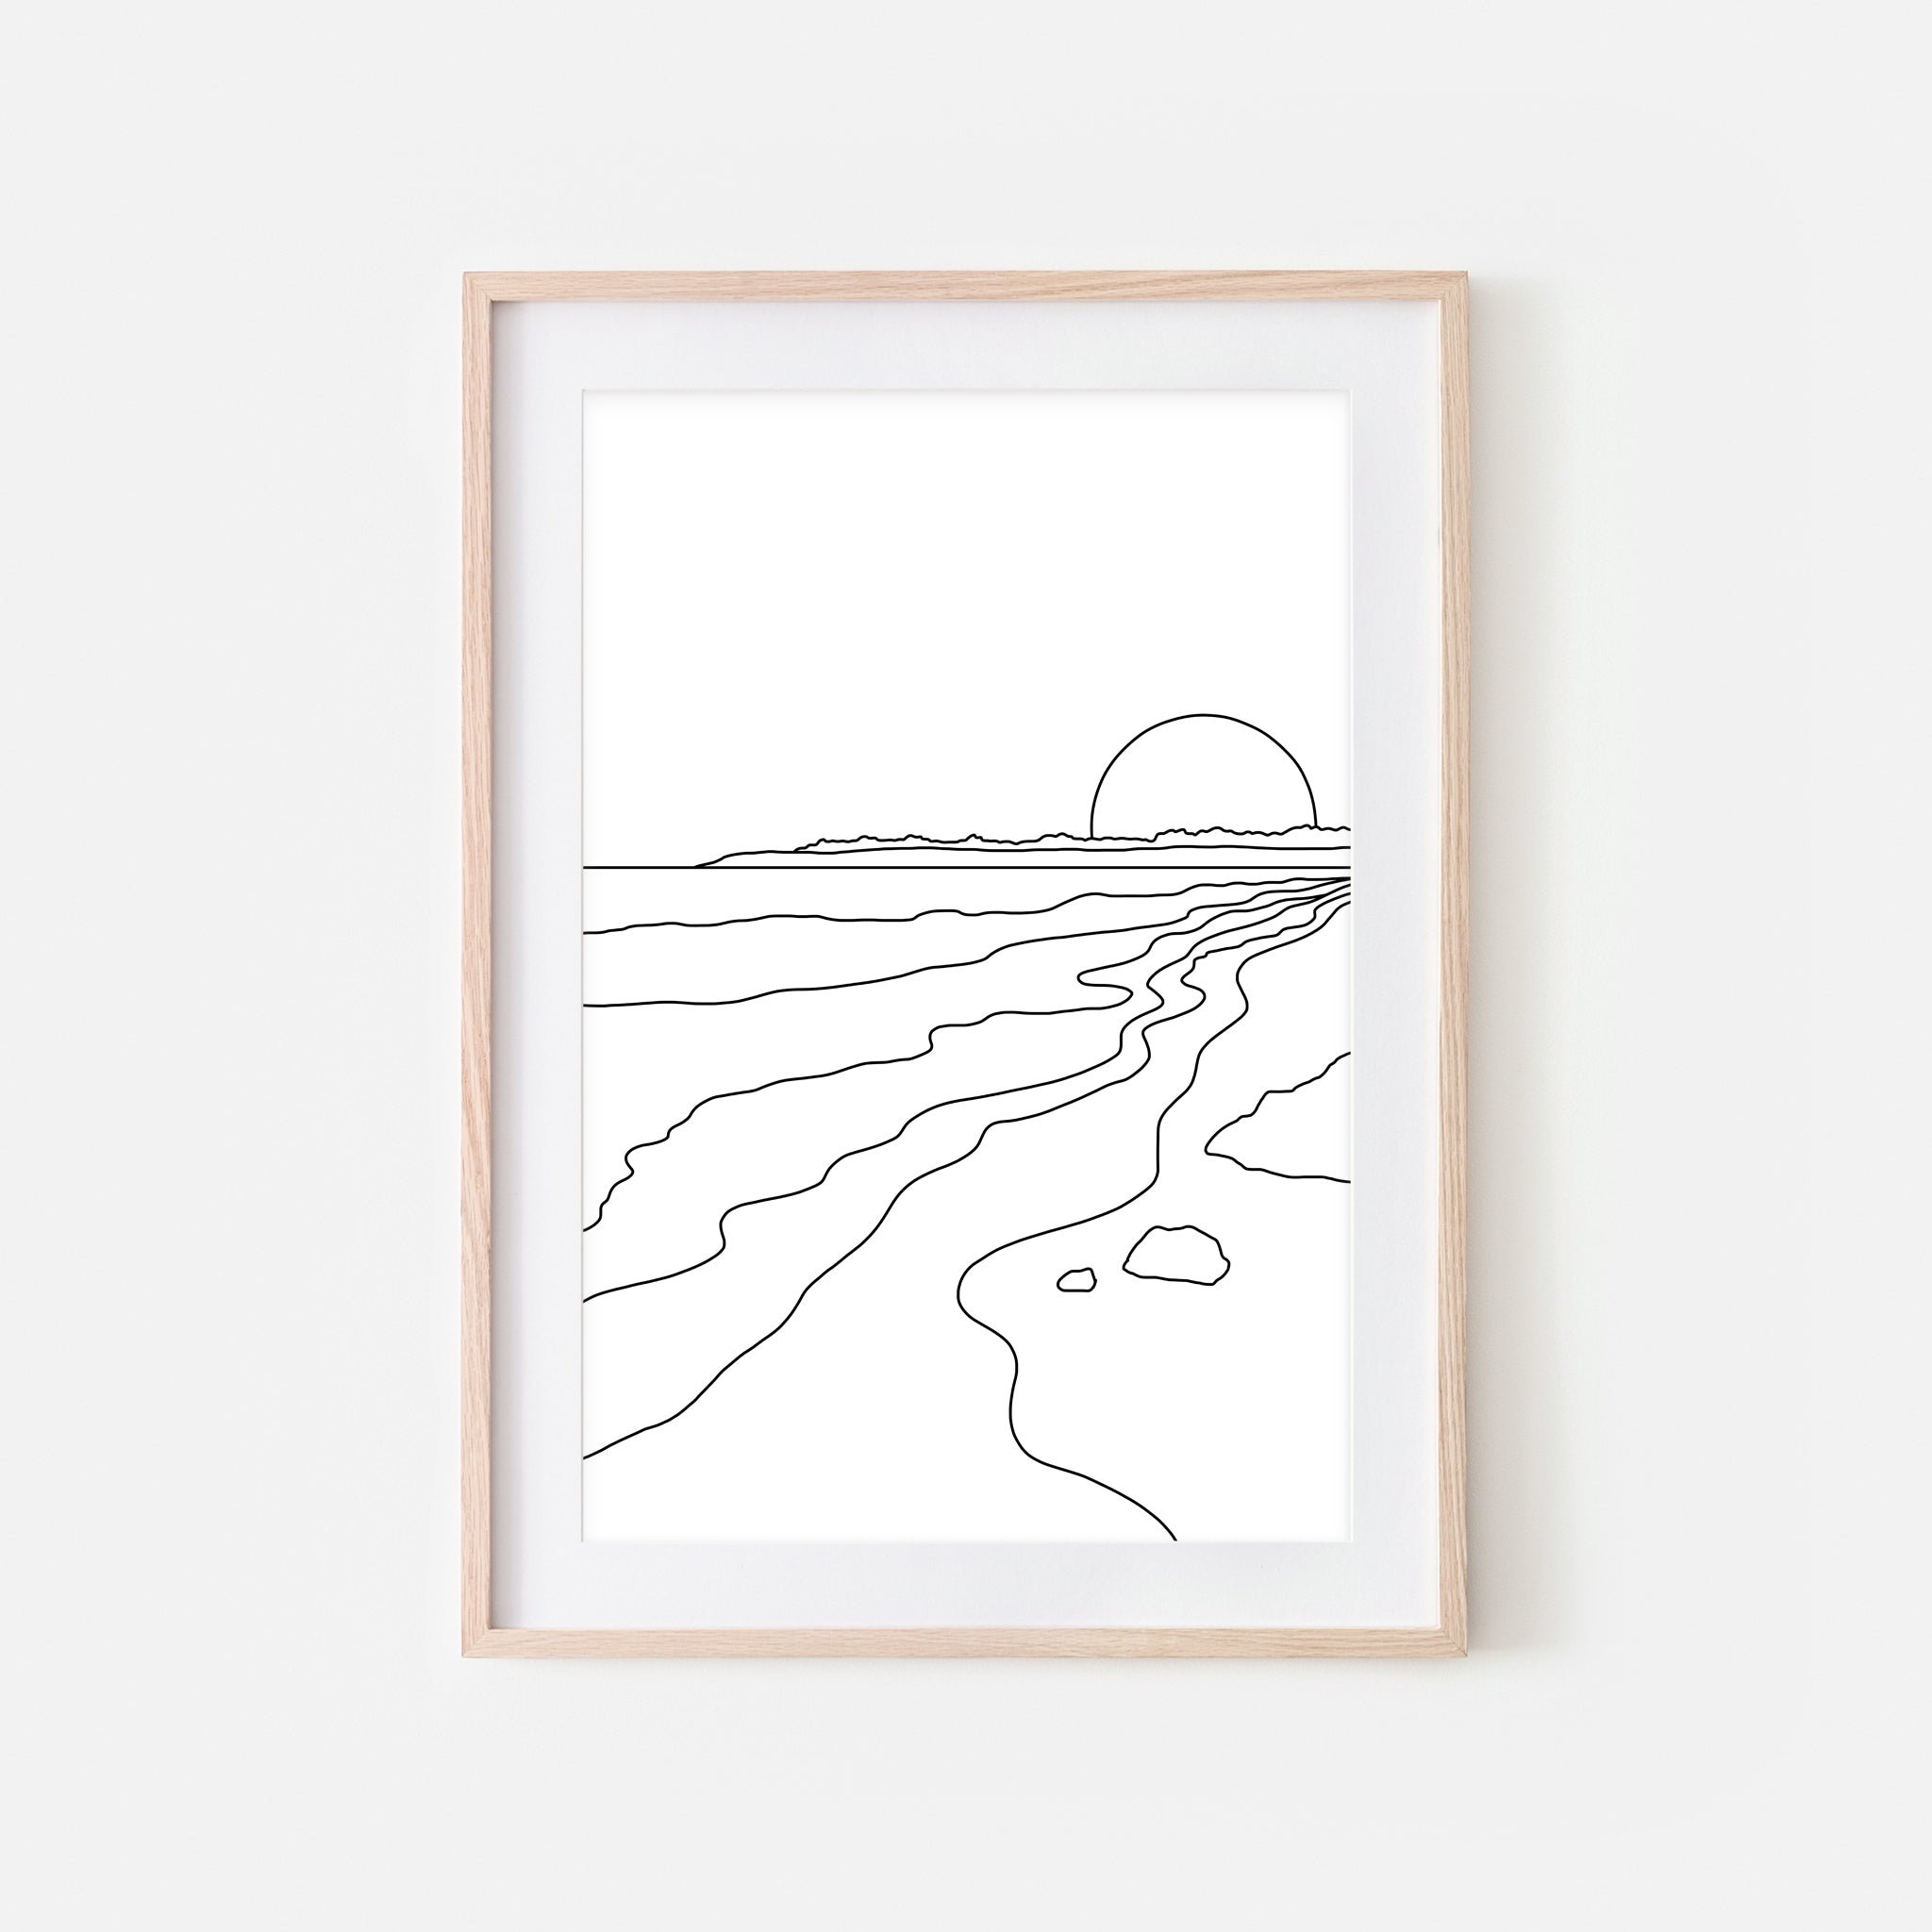 Sunset No. 4 Line Art - Minimalist Abstract Coastal Ocean Beach Landscape Wall Decor - Black and White Print, Poster or Printable Download